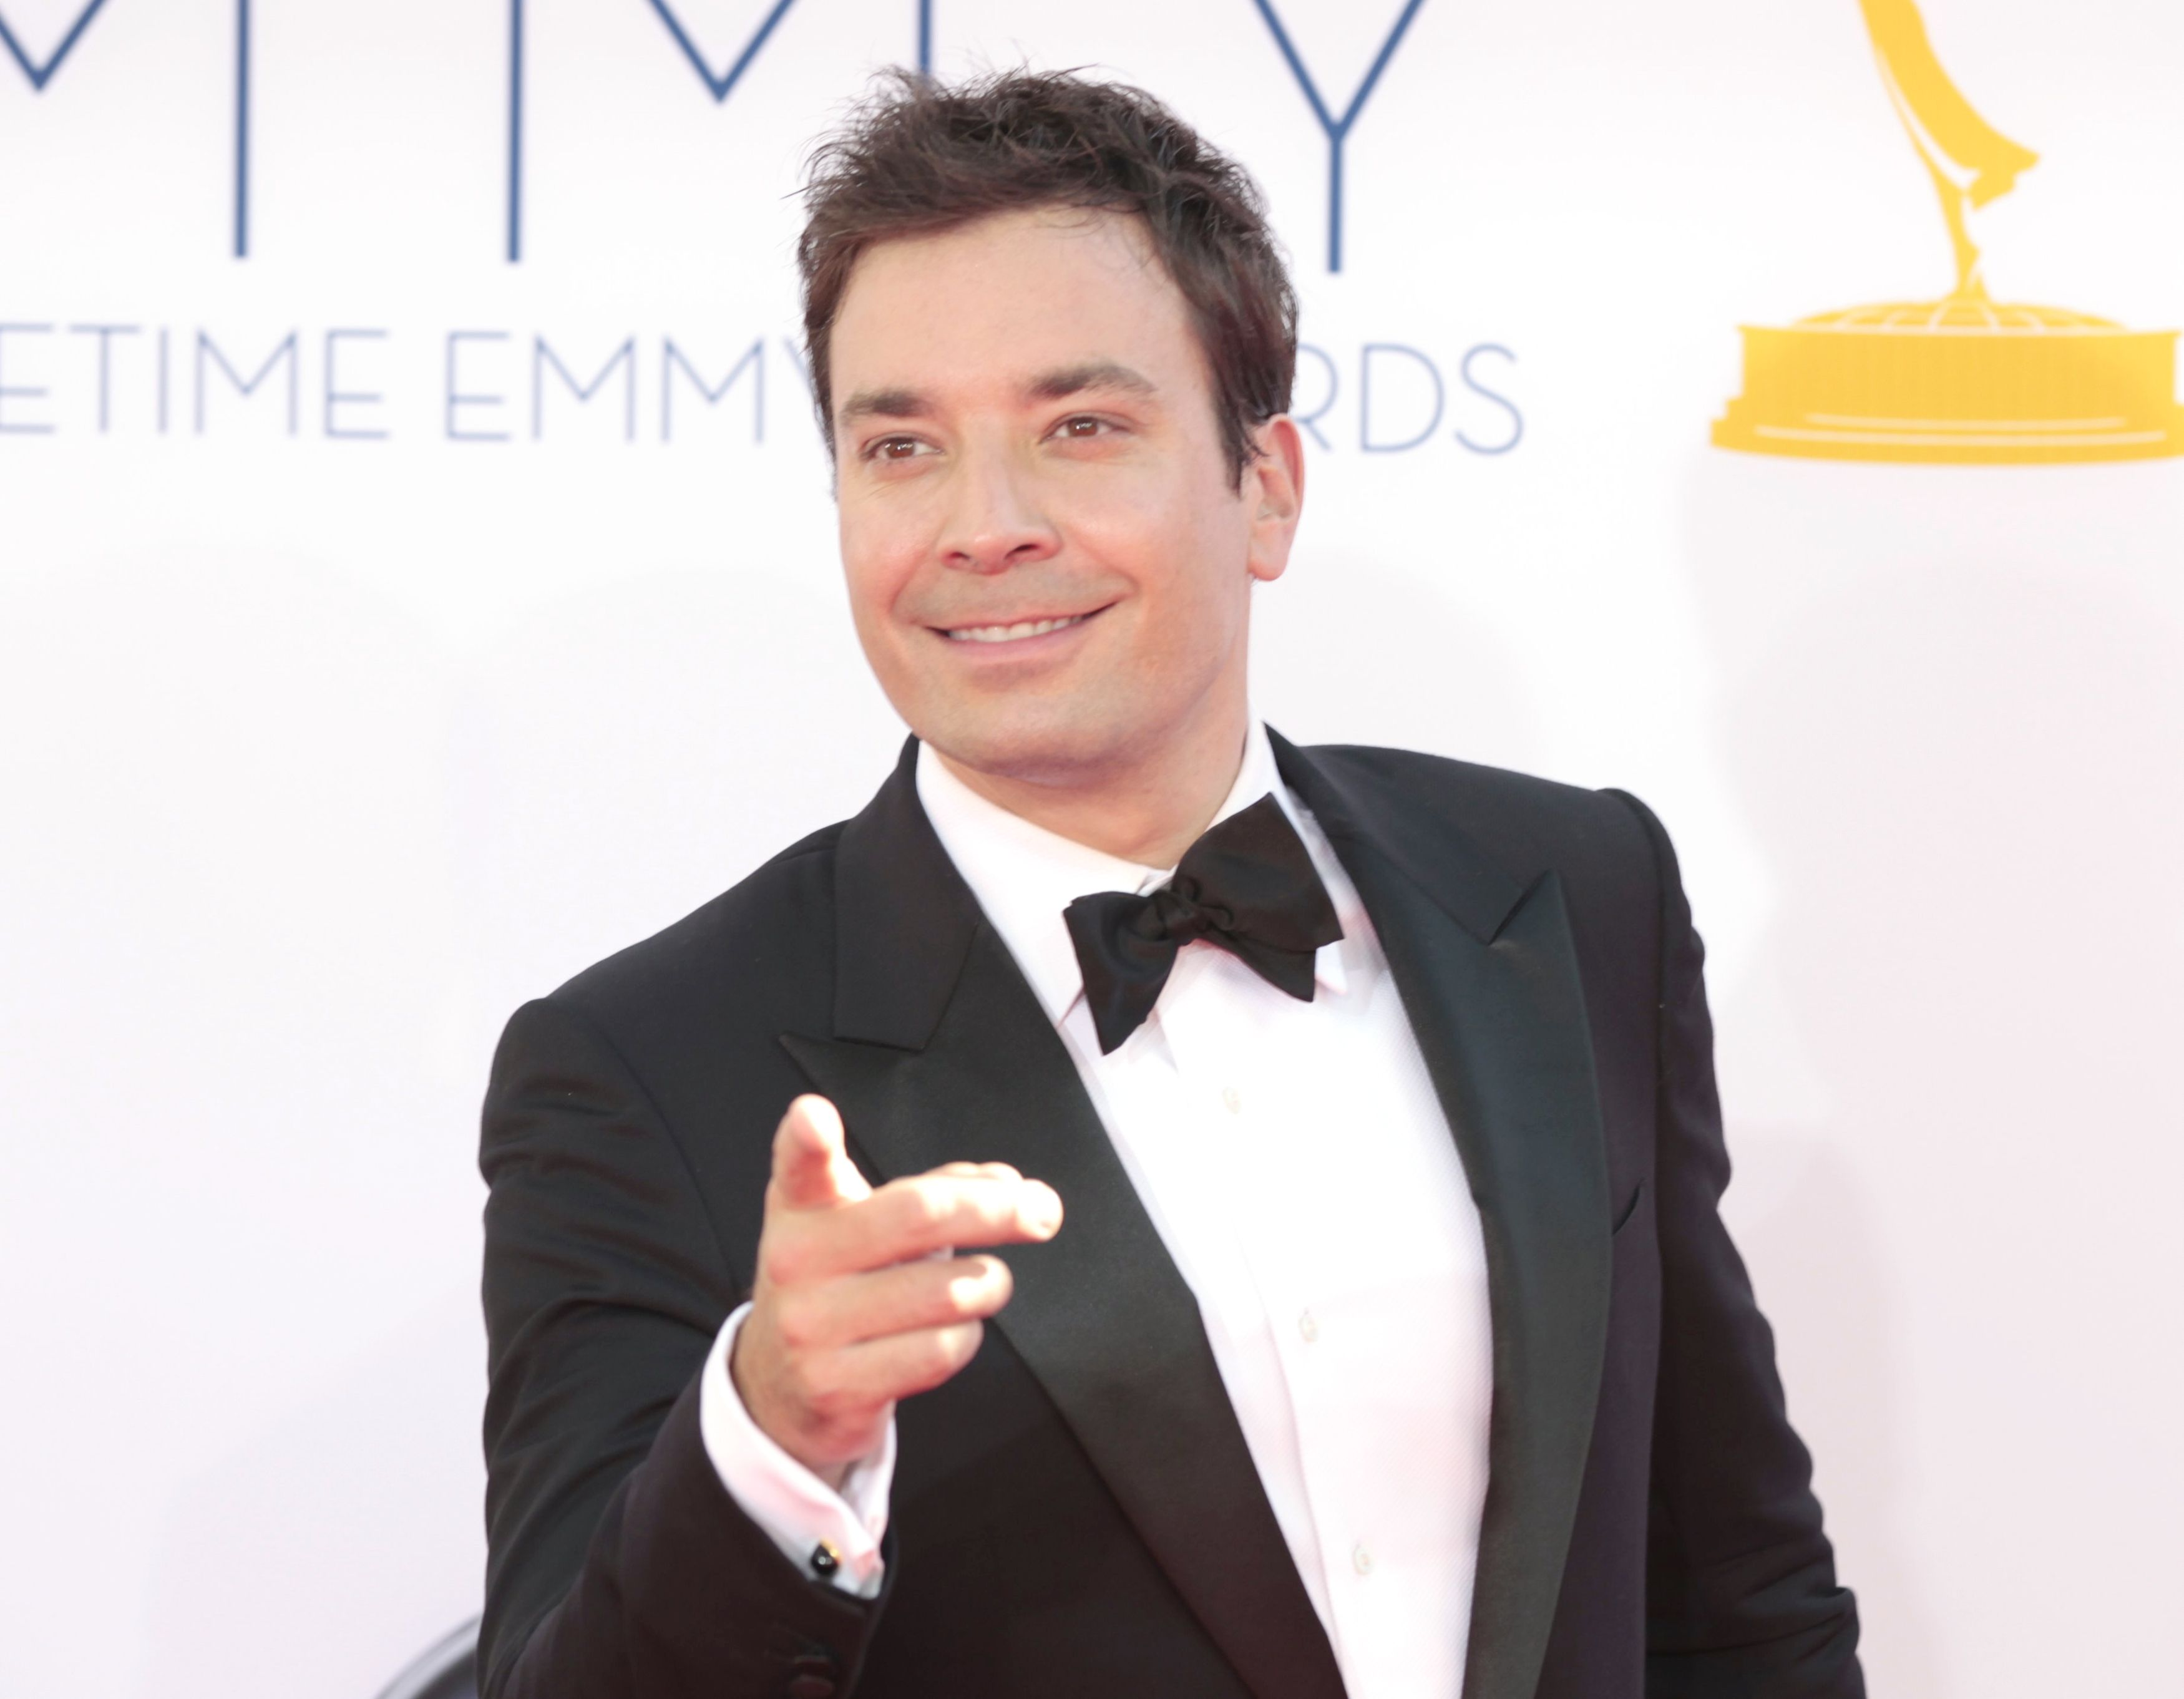 Television host Jimmy Fallon  - age: 42